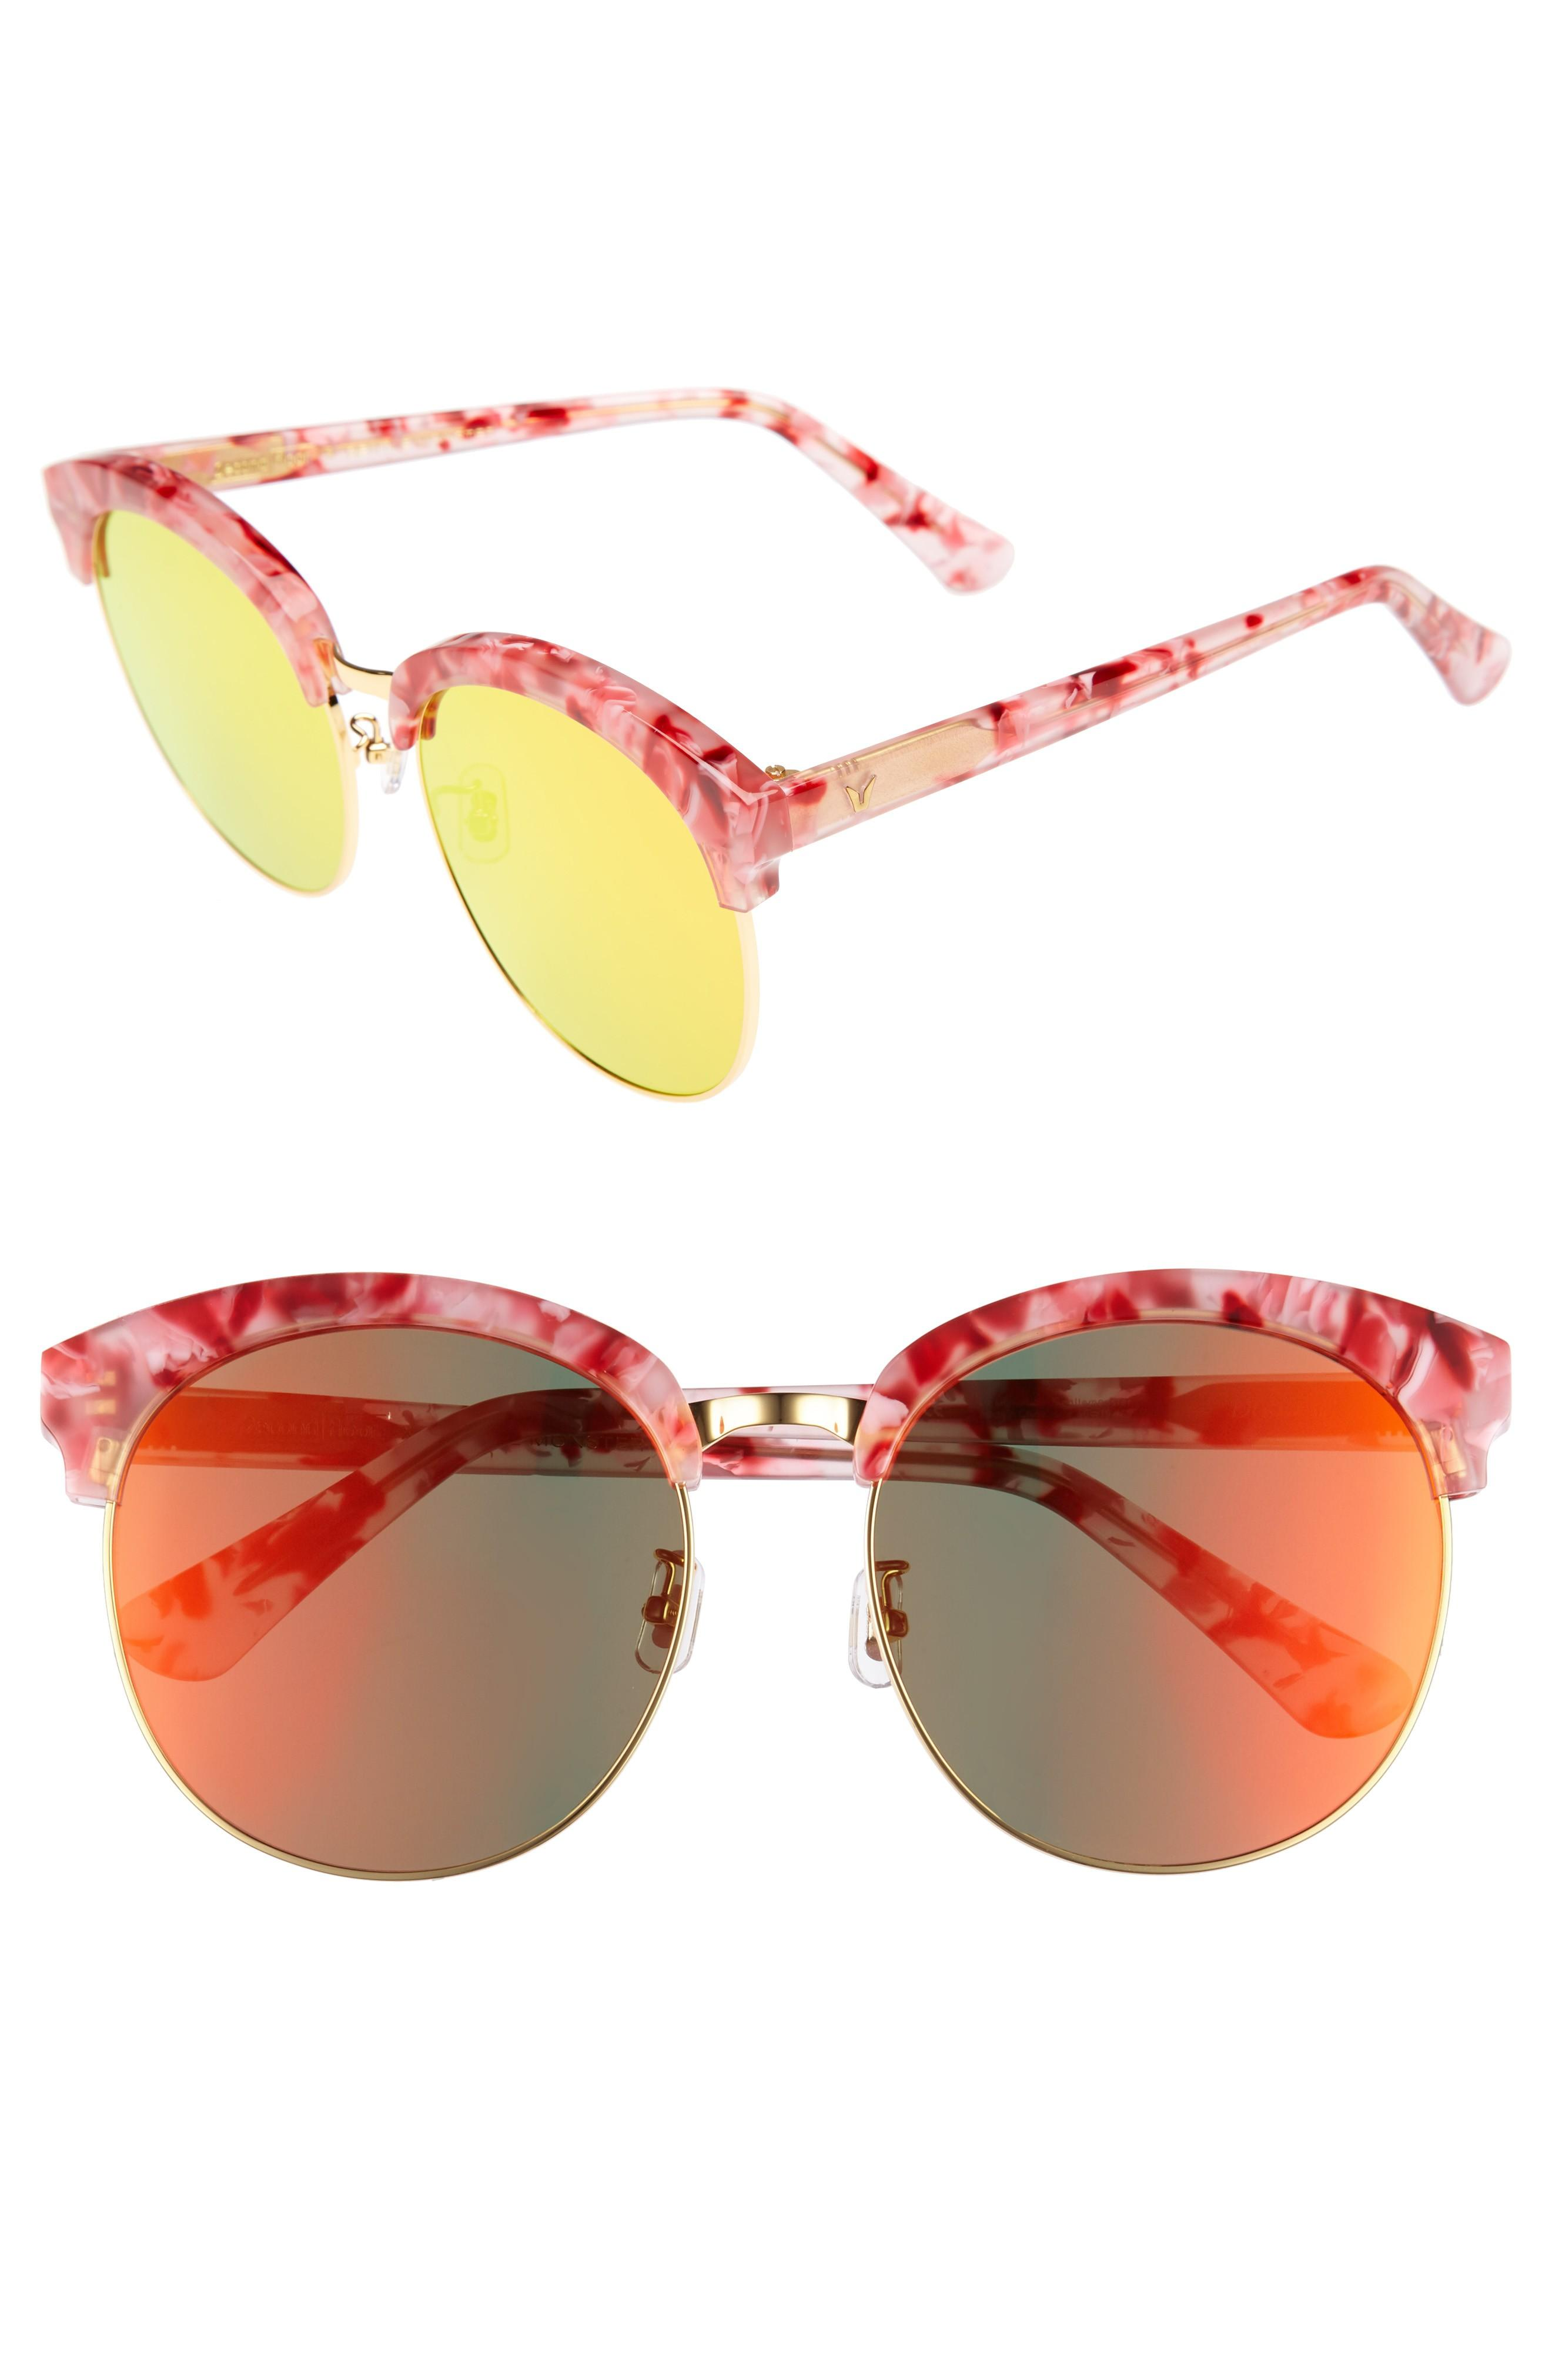 2483a13620ce Gentle Monster Deborah 60Mm Retro Sunglasses - Pink Mirror